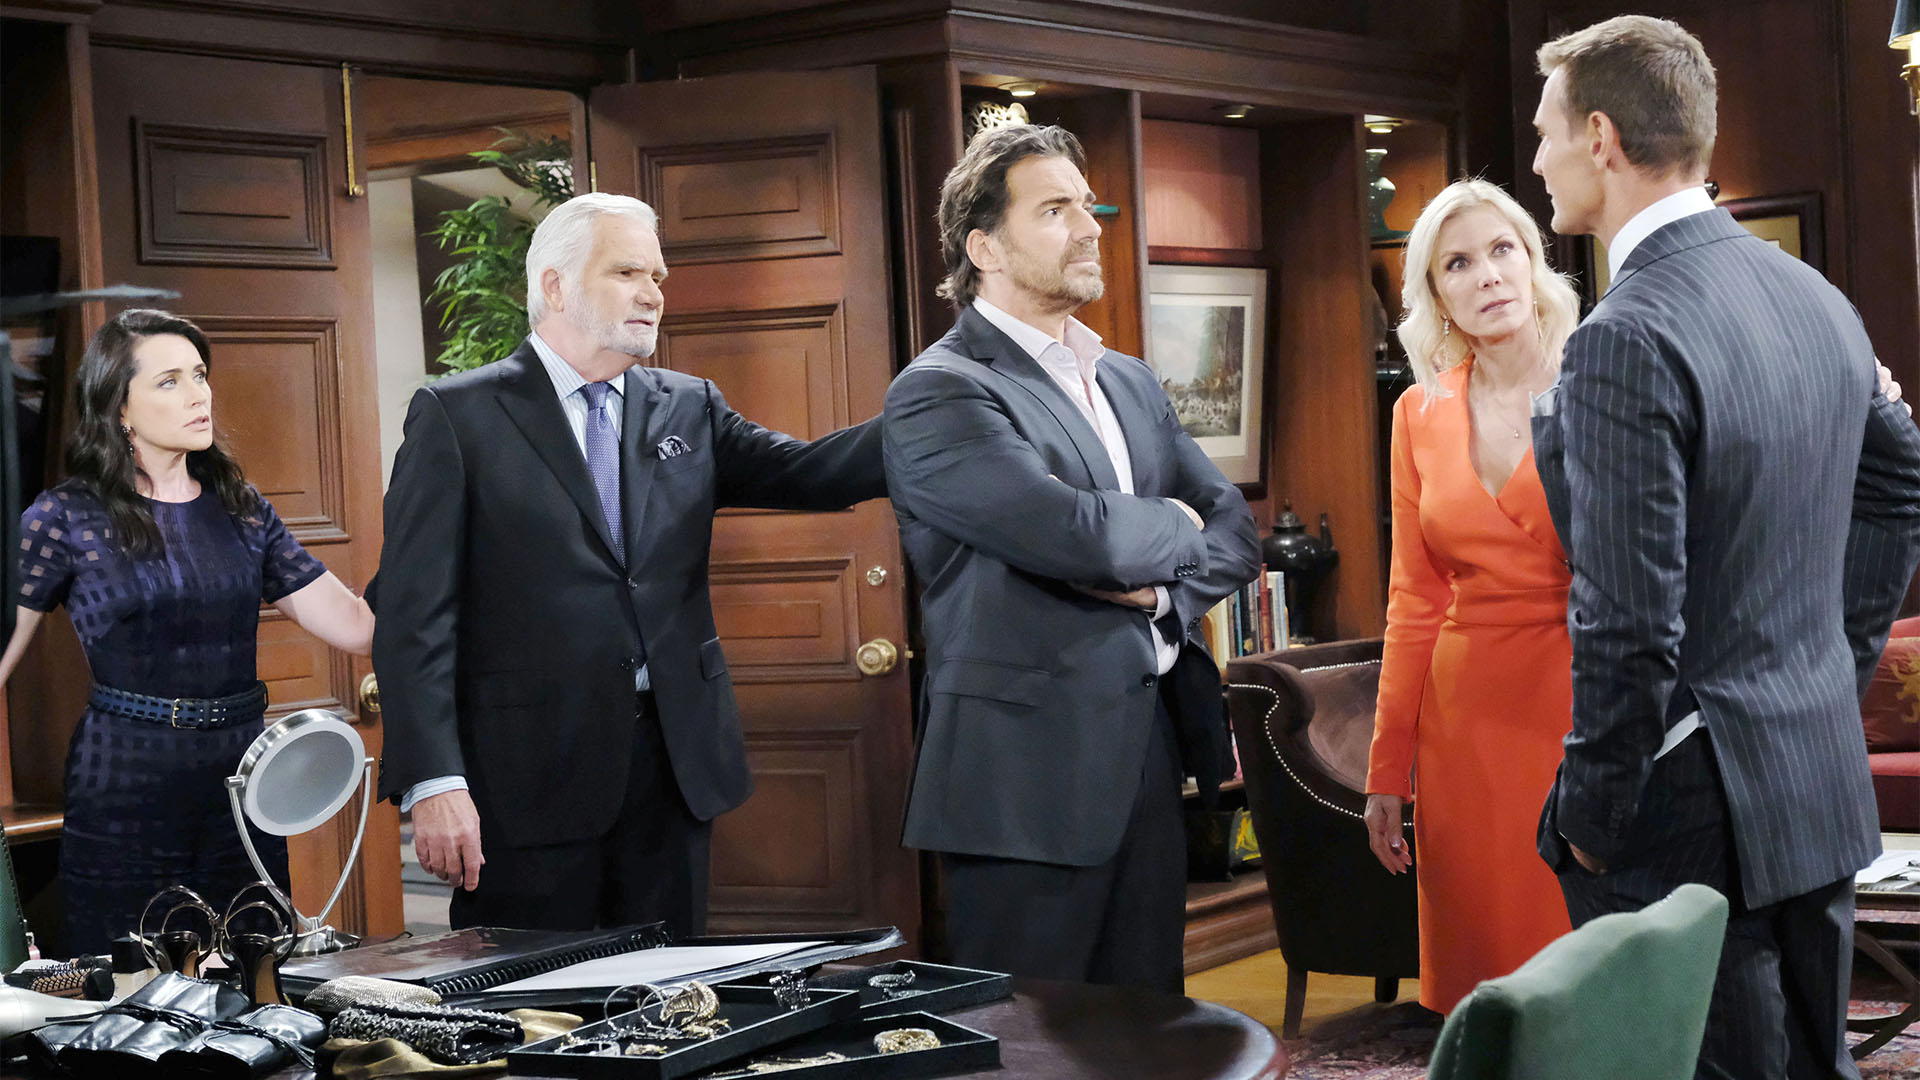 Thorne displays his newest endeavor to the delight of Eric and Brooke and to the dismay of Ridge.